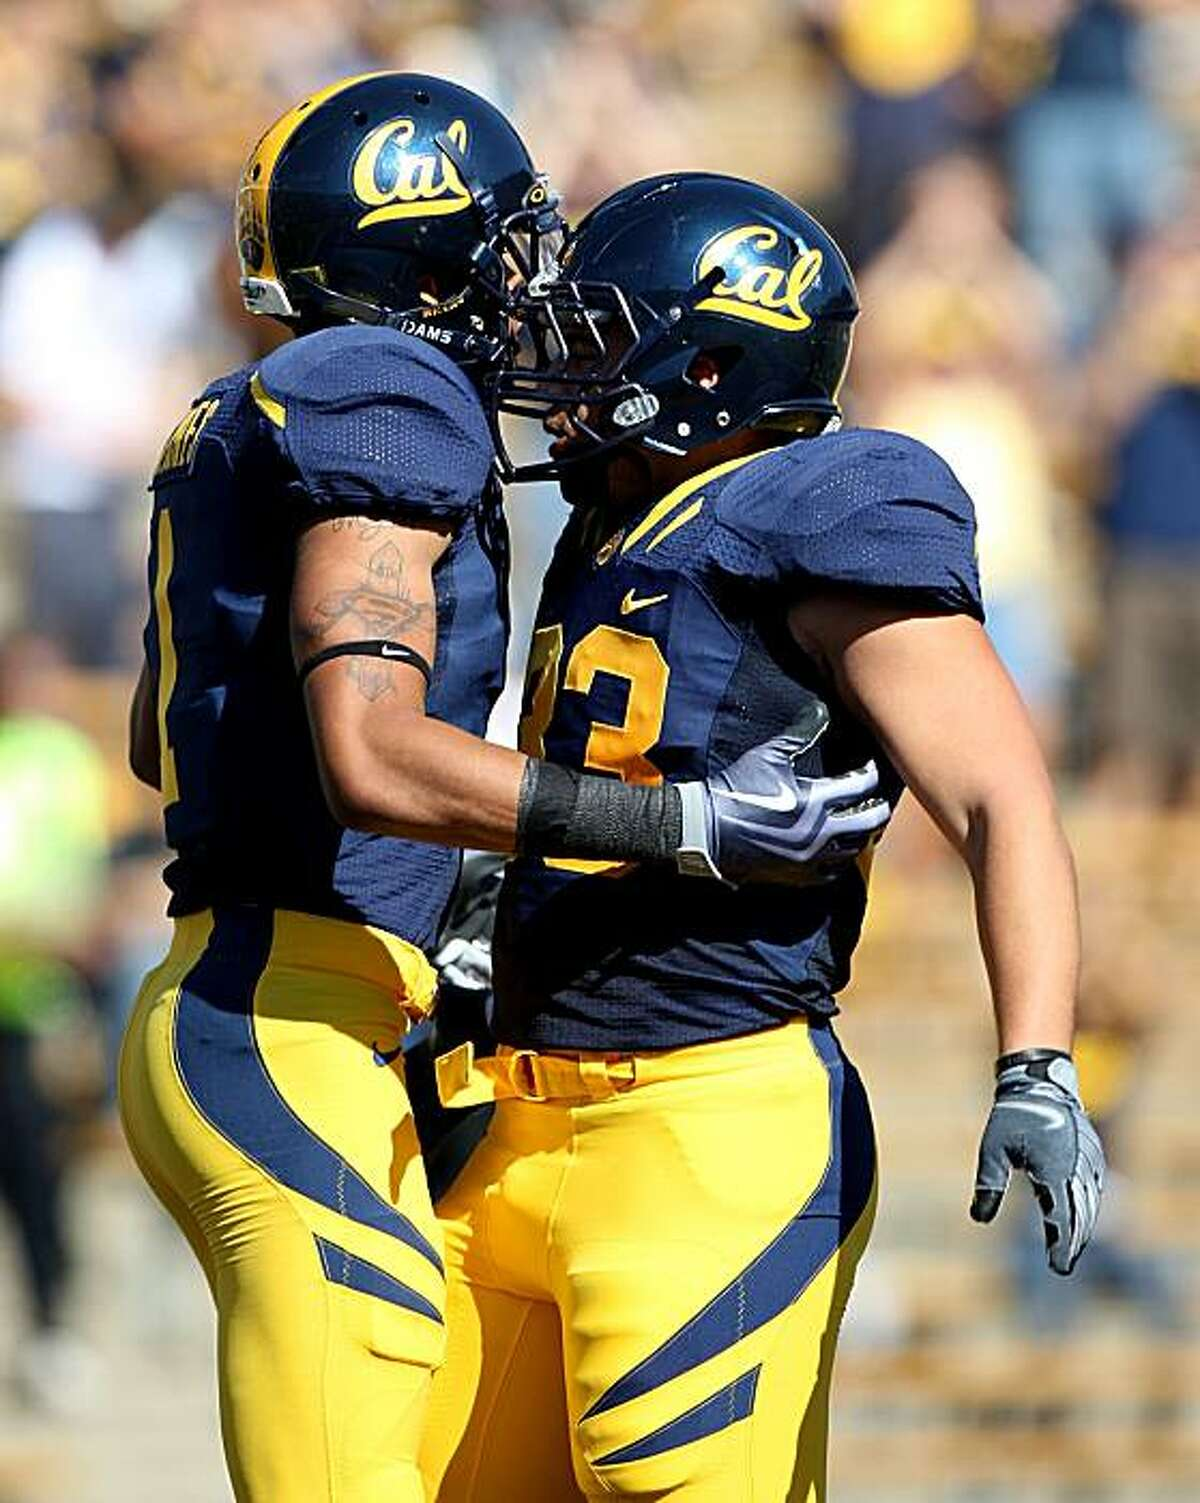 BERKELEY, CA - OCTOBER 24: Marvin Jones #1 of the California Golden Bears celebrates with teammate Brain Holley #33 after scoring a tochdown in the 1st half against the Washington State Cougars at California Memorial Stadium on October 24, 2009 in Berkeley, California. (Photo by Jed Jacobsohn/Getty Images)